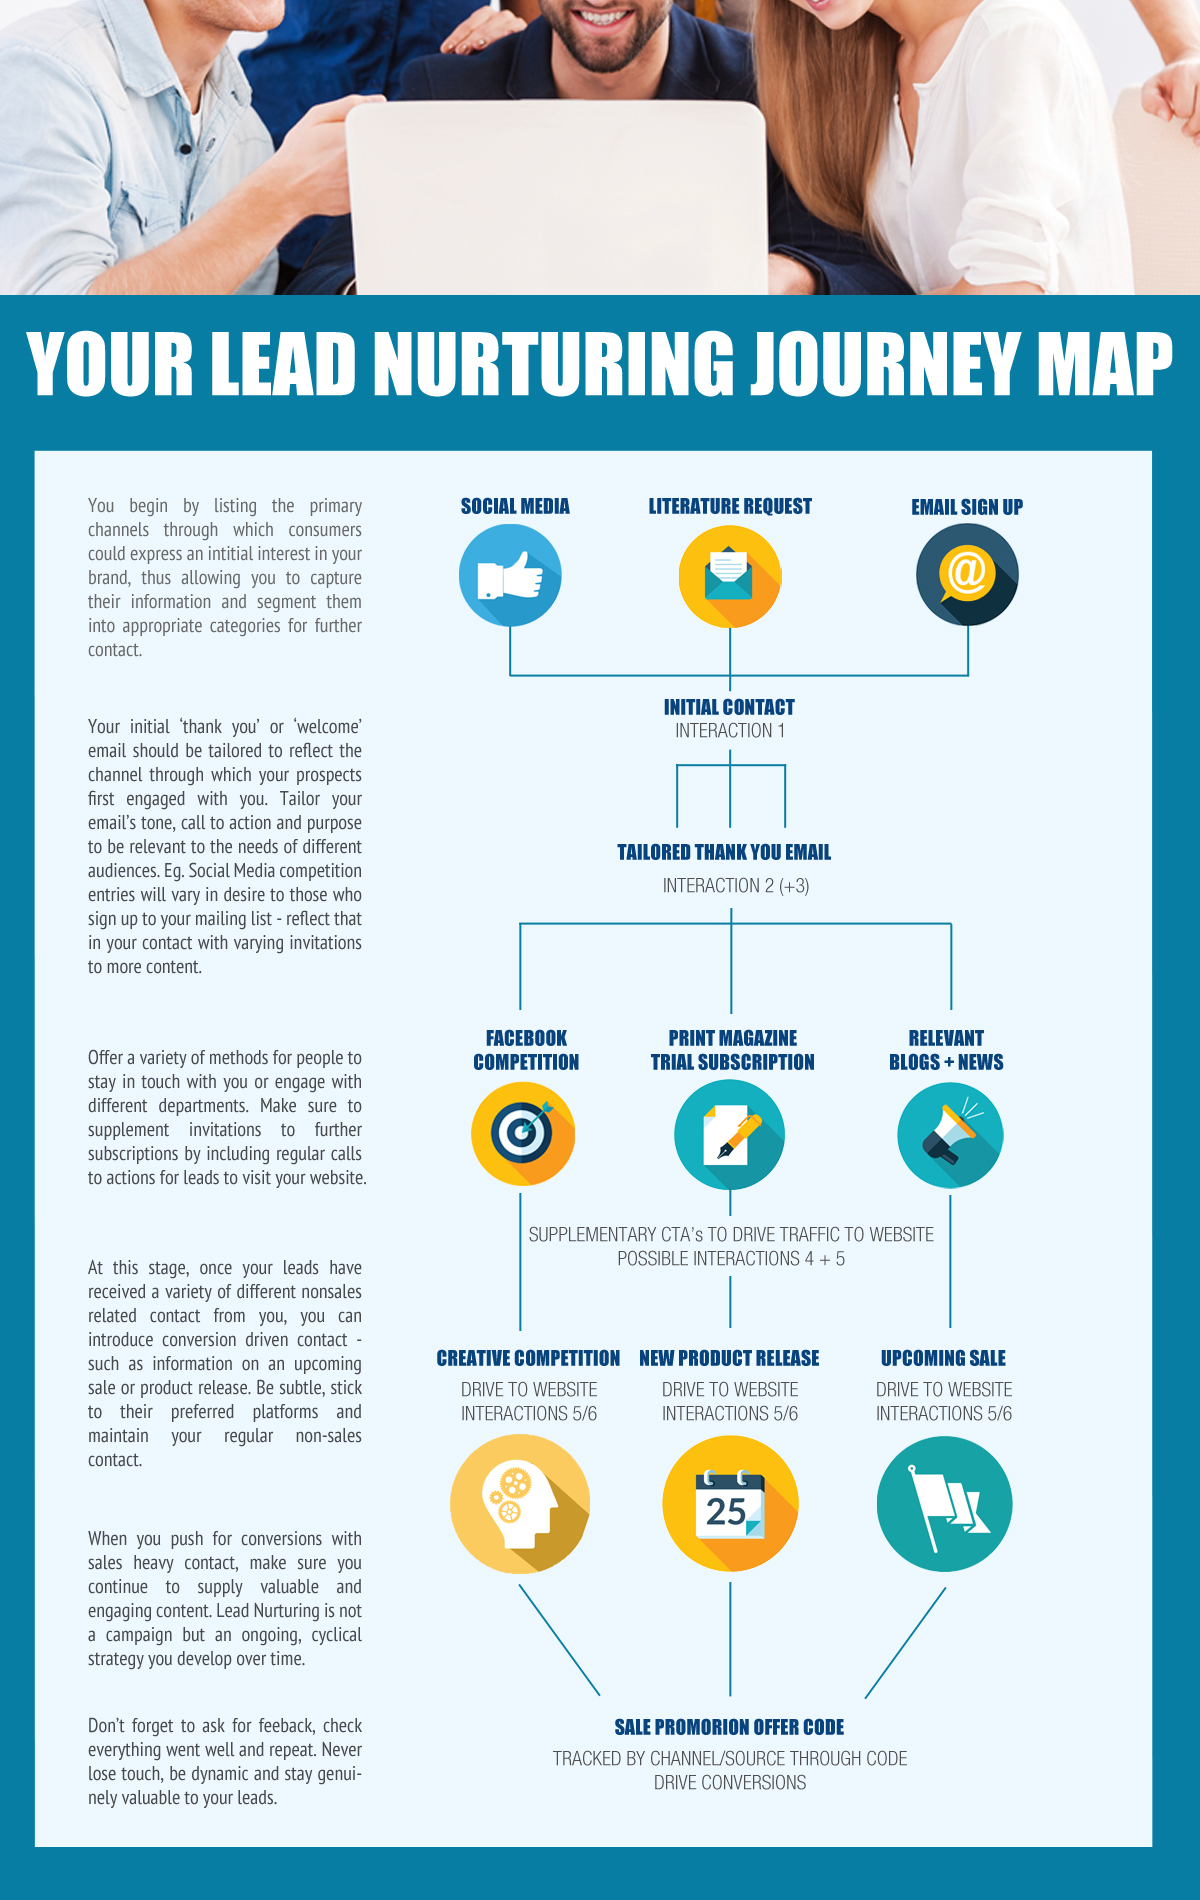 Lead Nurturing Consumer Journey infographic